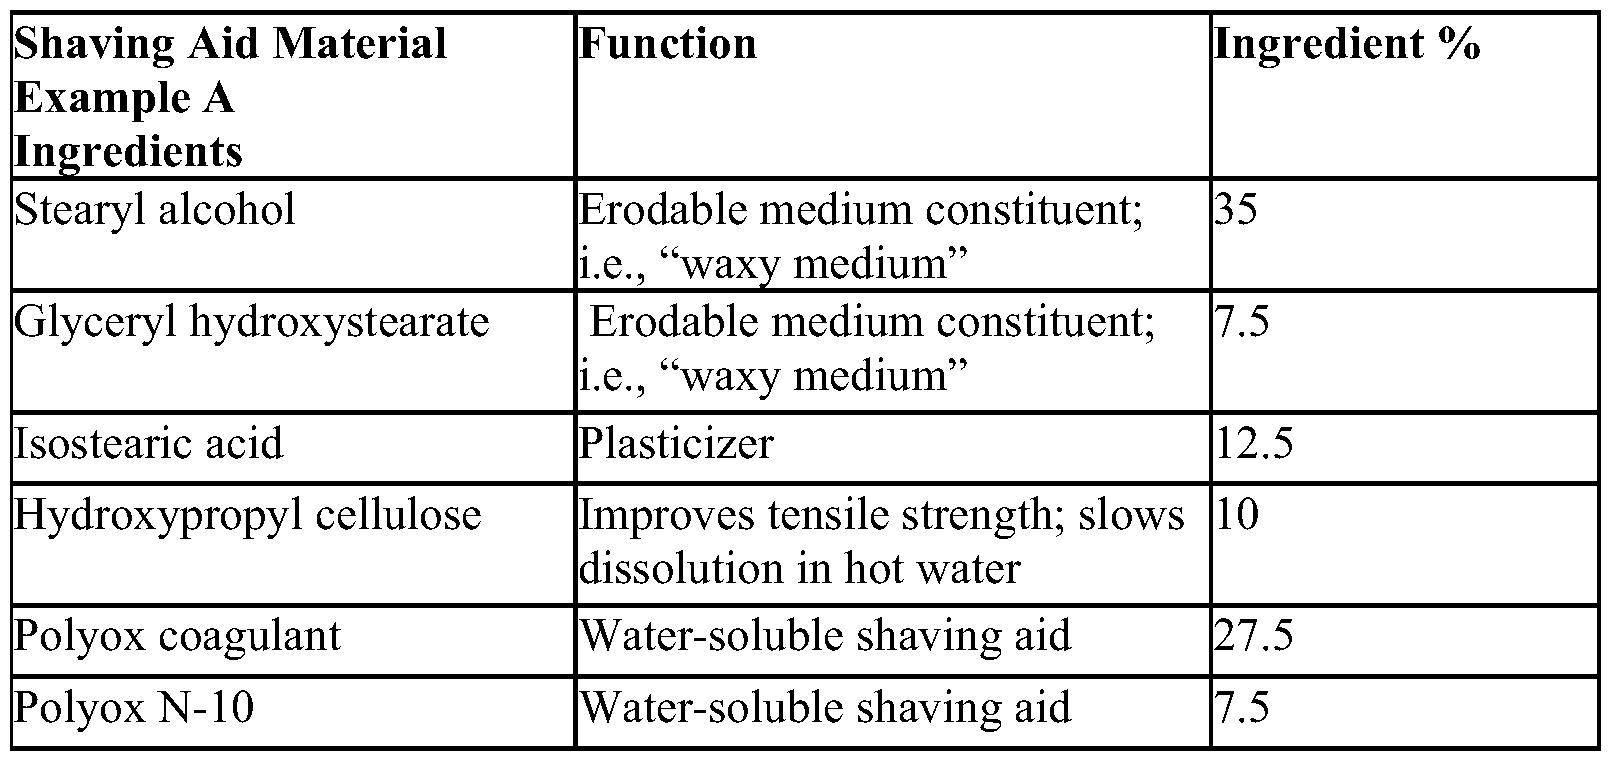 WO2009114420A2 - Shaving aid material - Google Patents